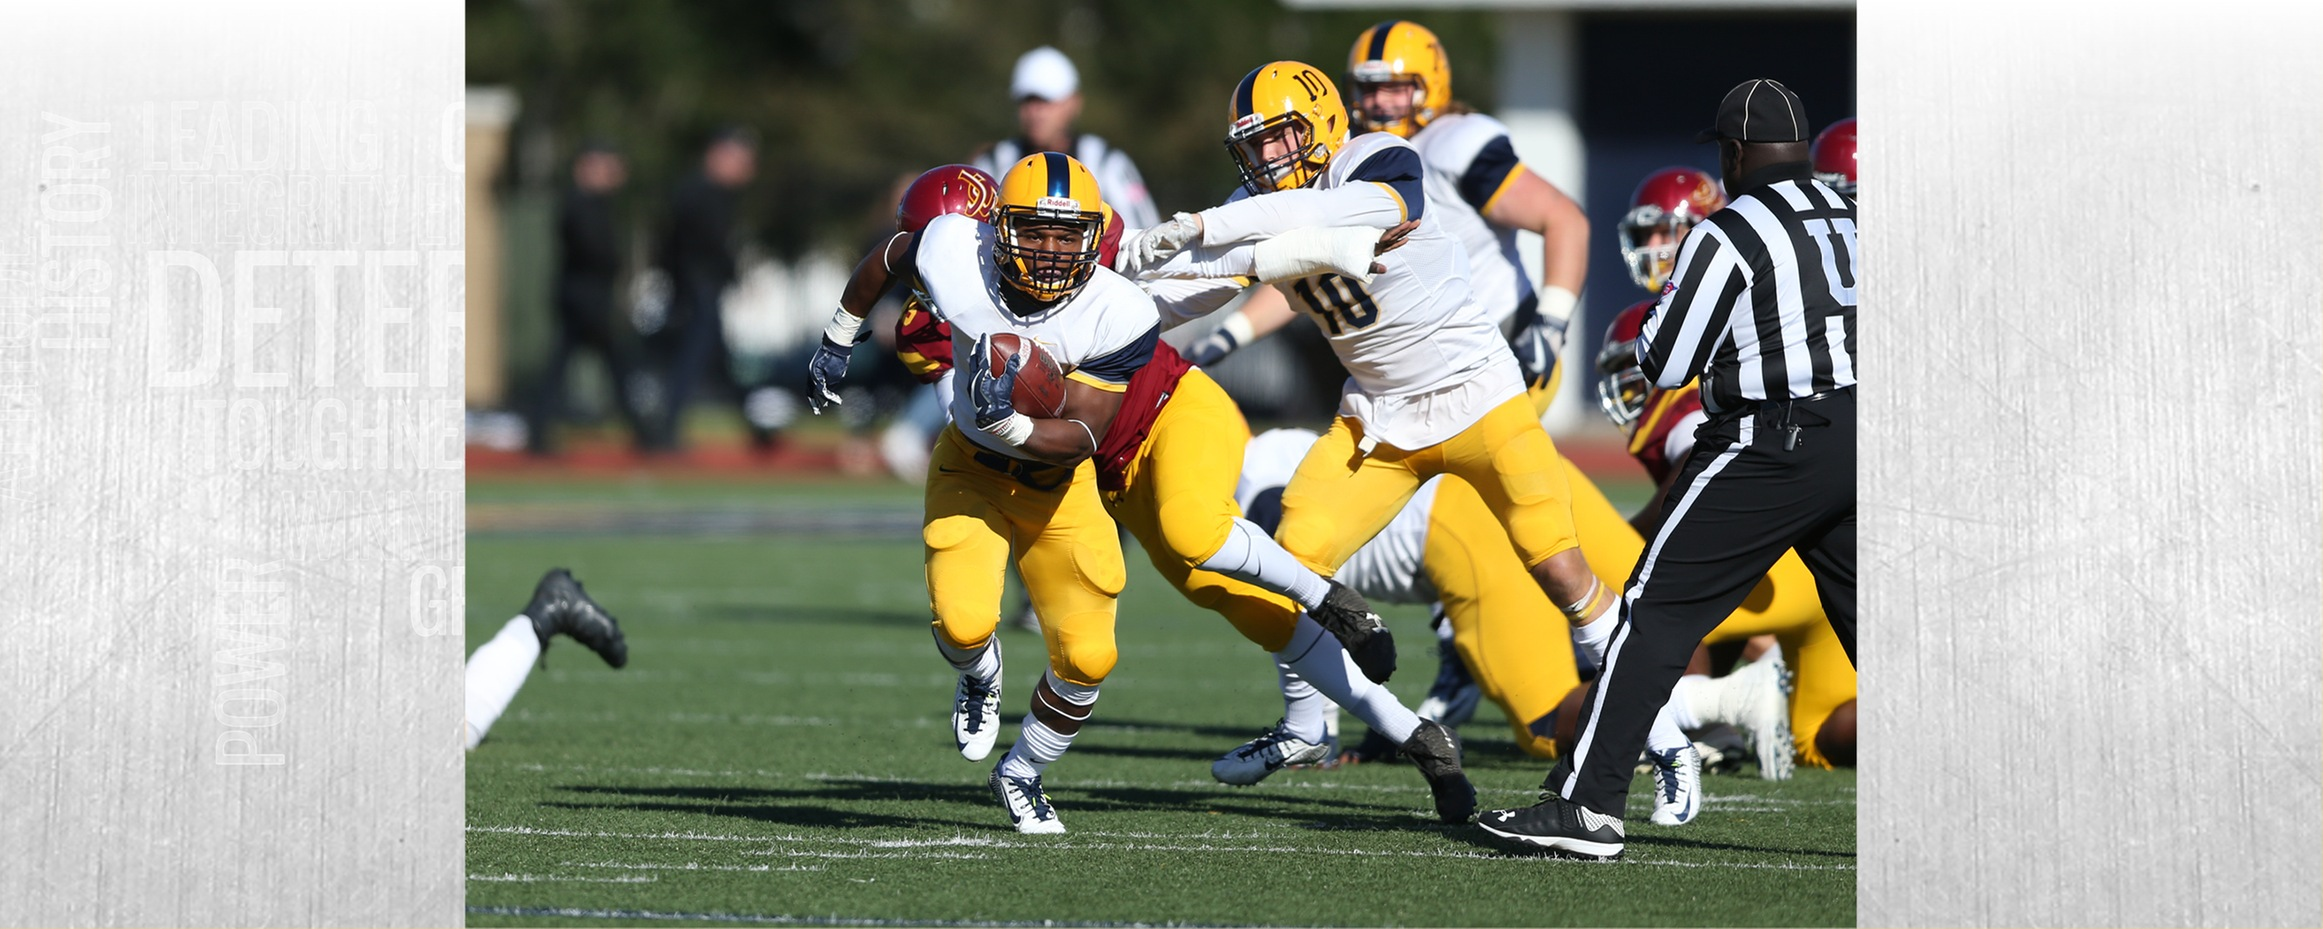 MGCCC loses to No. 8 JCJC